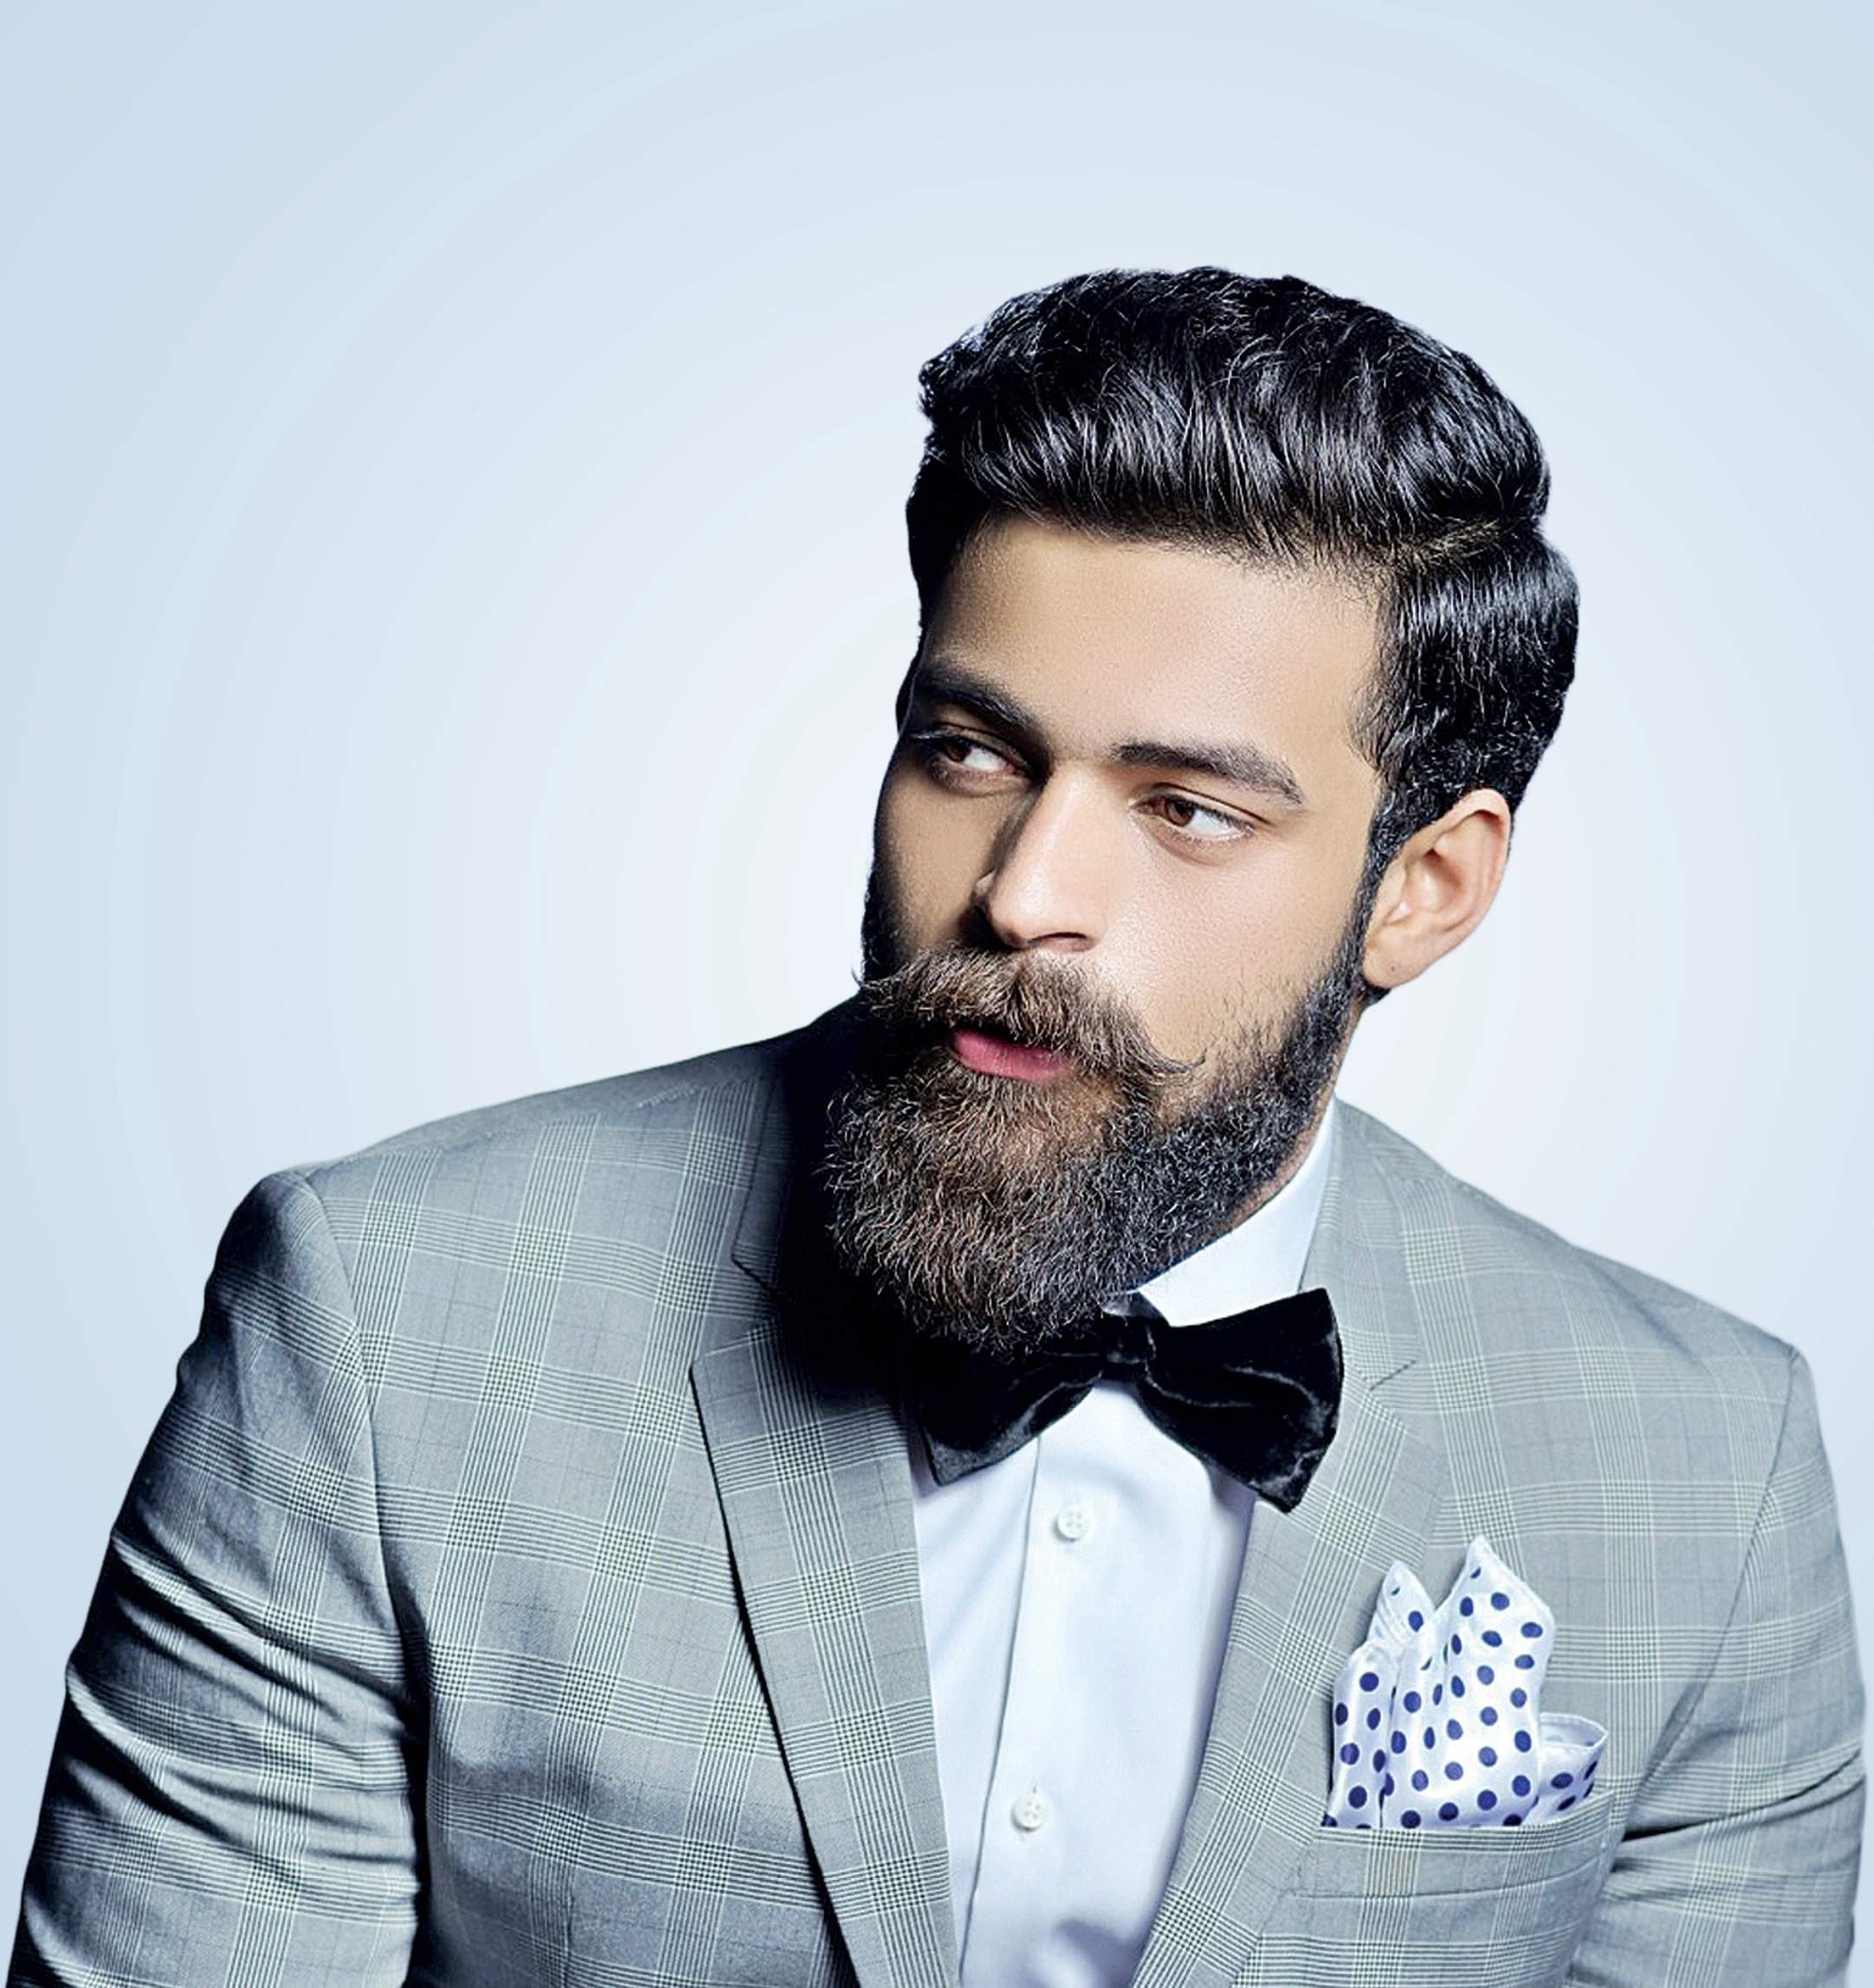 tollywood actor varun tej from one of his photoshoots